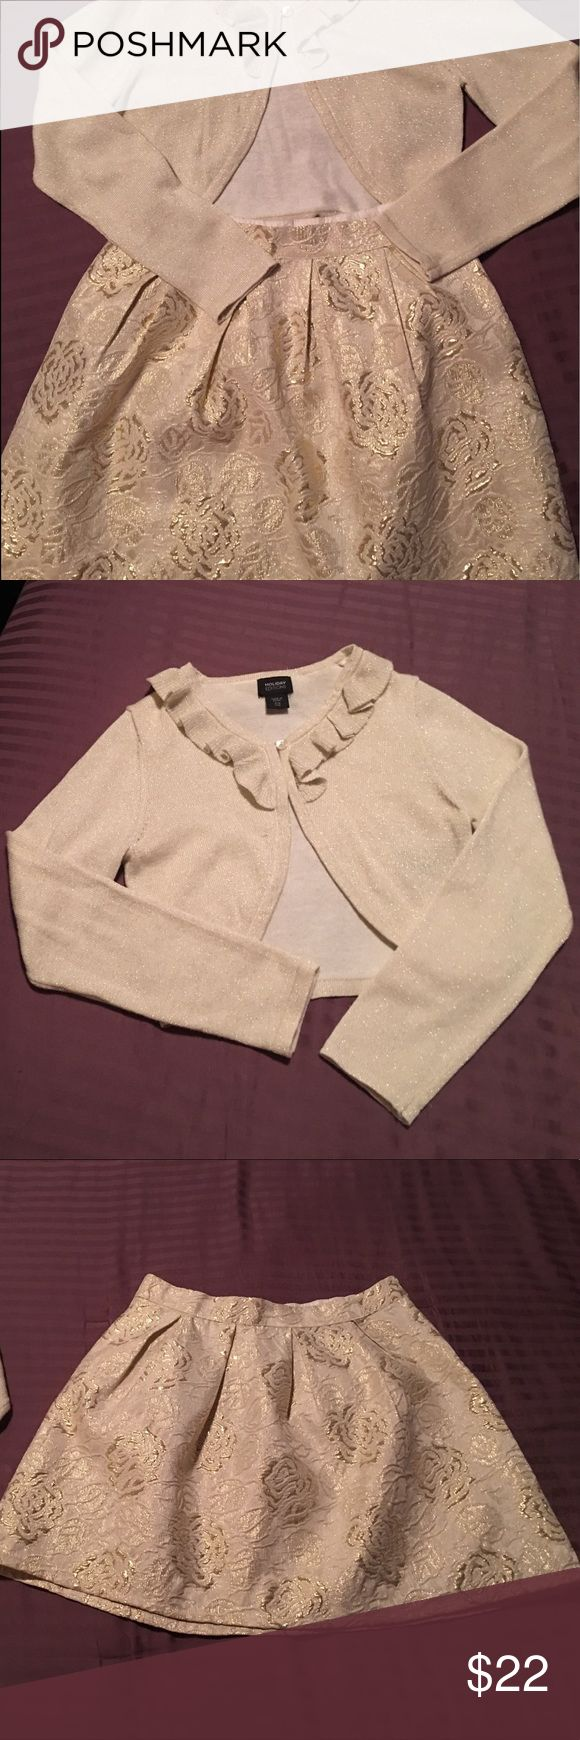 Gold skirt with matching sweater Worn once. Beautiful gold skirt and sweater ensemble! Size 7/8 (little girls) Excellent condition! Matching Sets